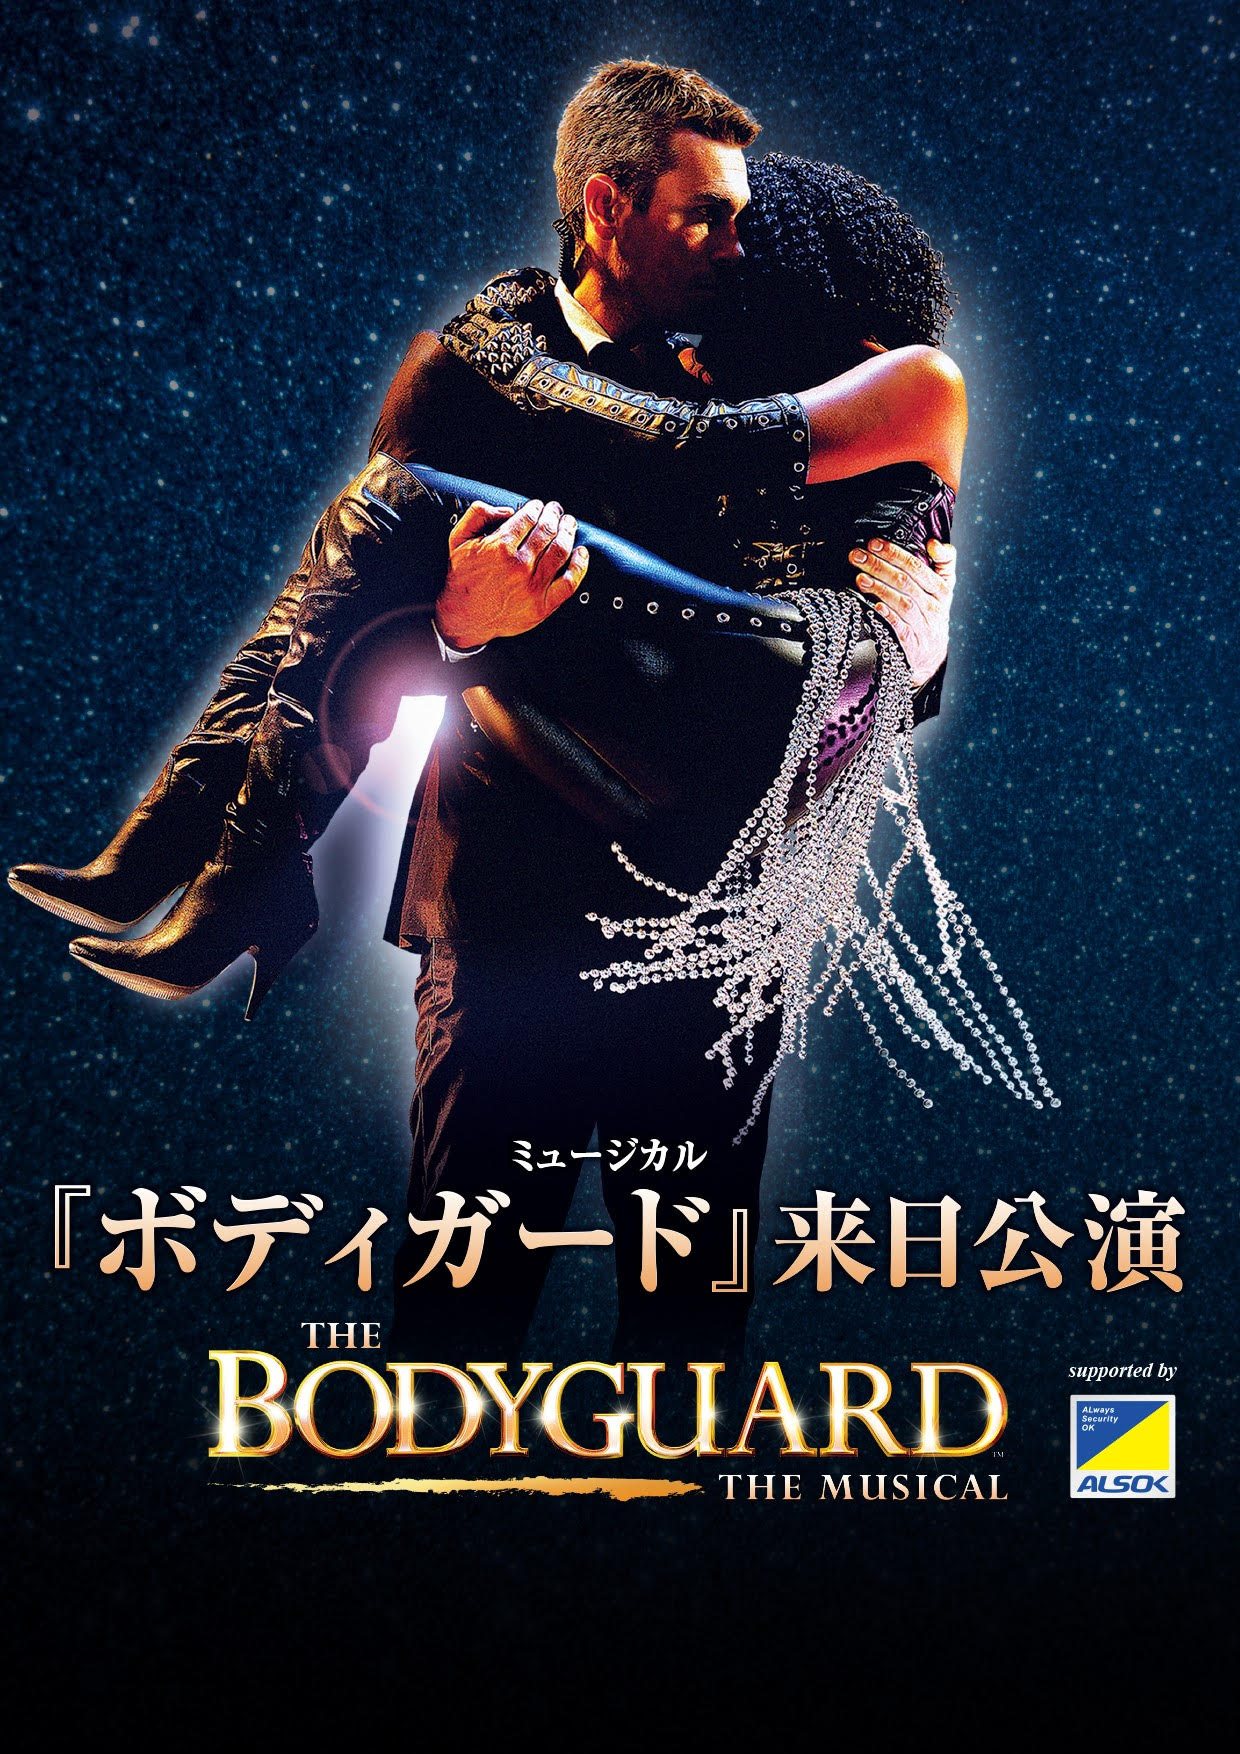 The Bodyguard The Musical UK Tour in Japan